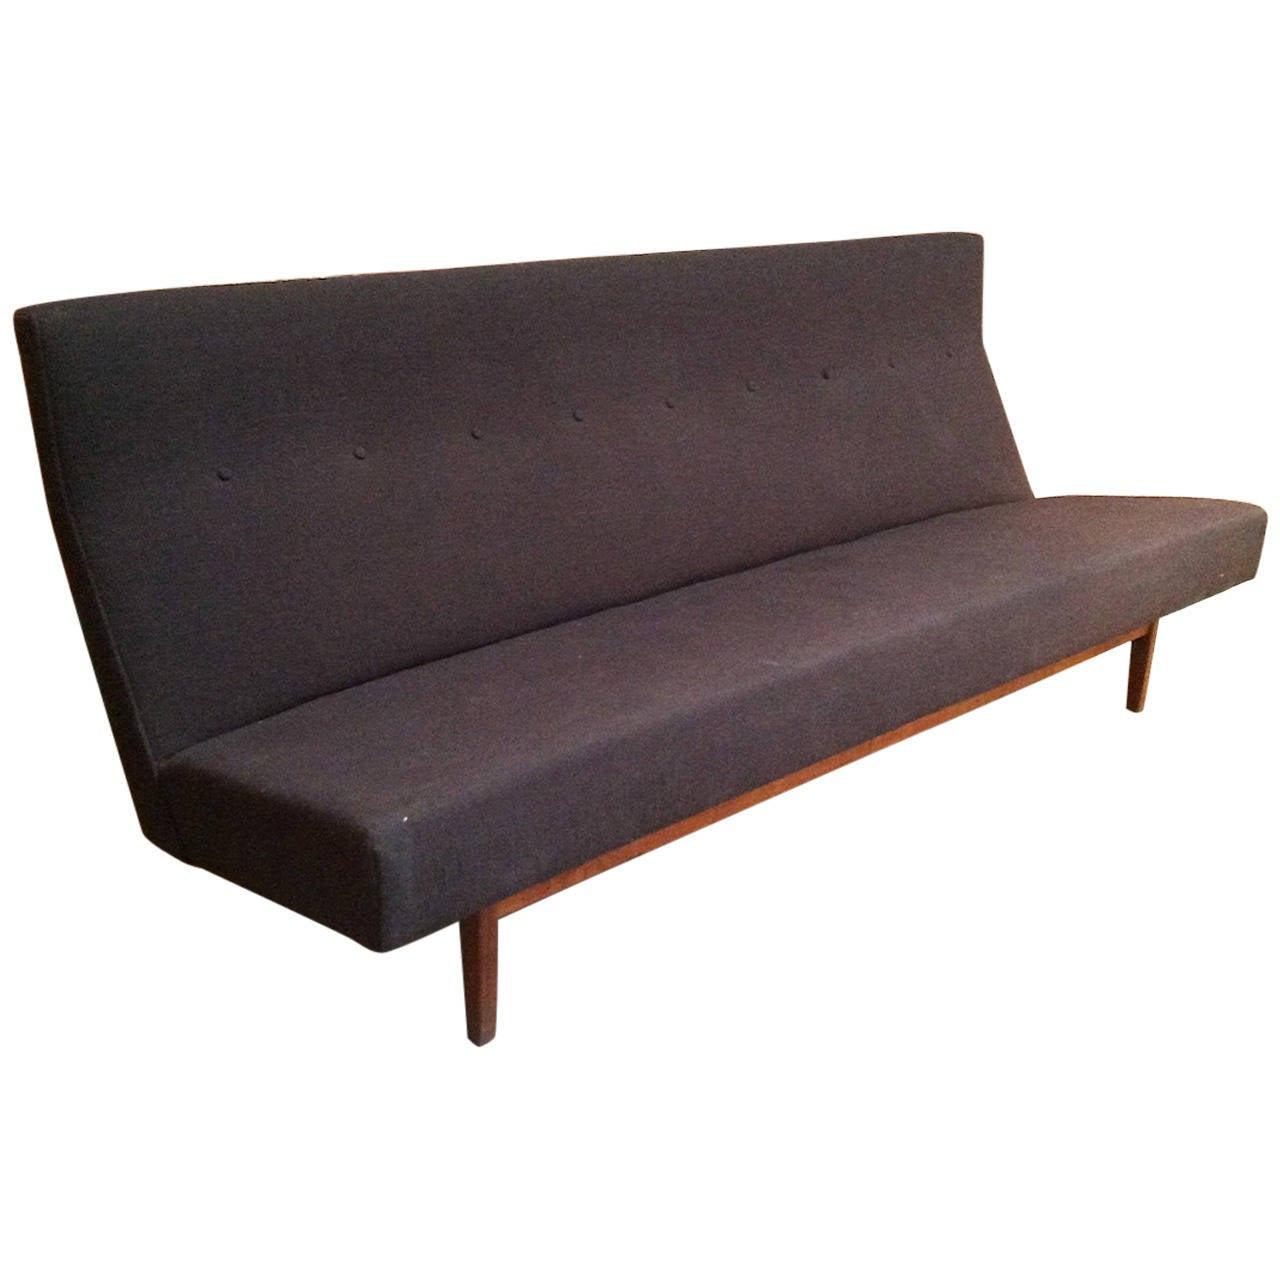 Vintage jens risom danish modern armless sofa at 1stdibs